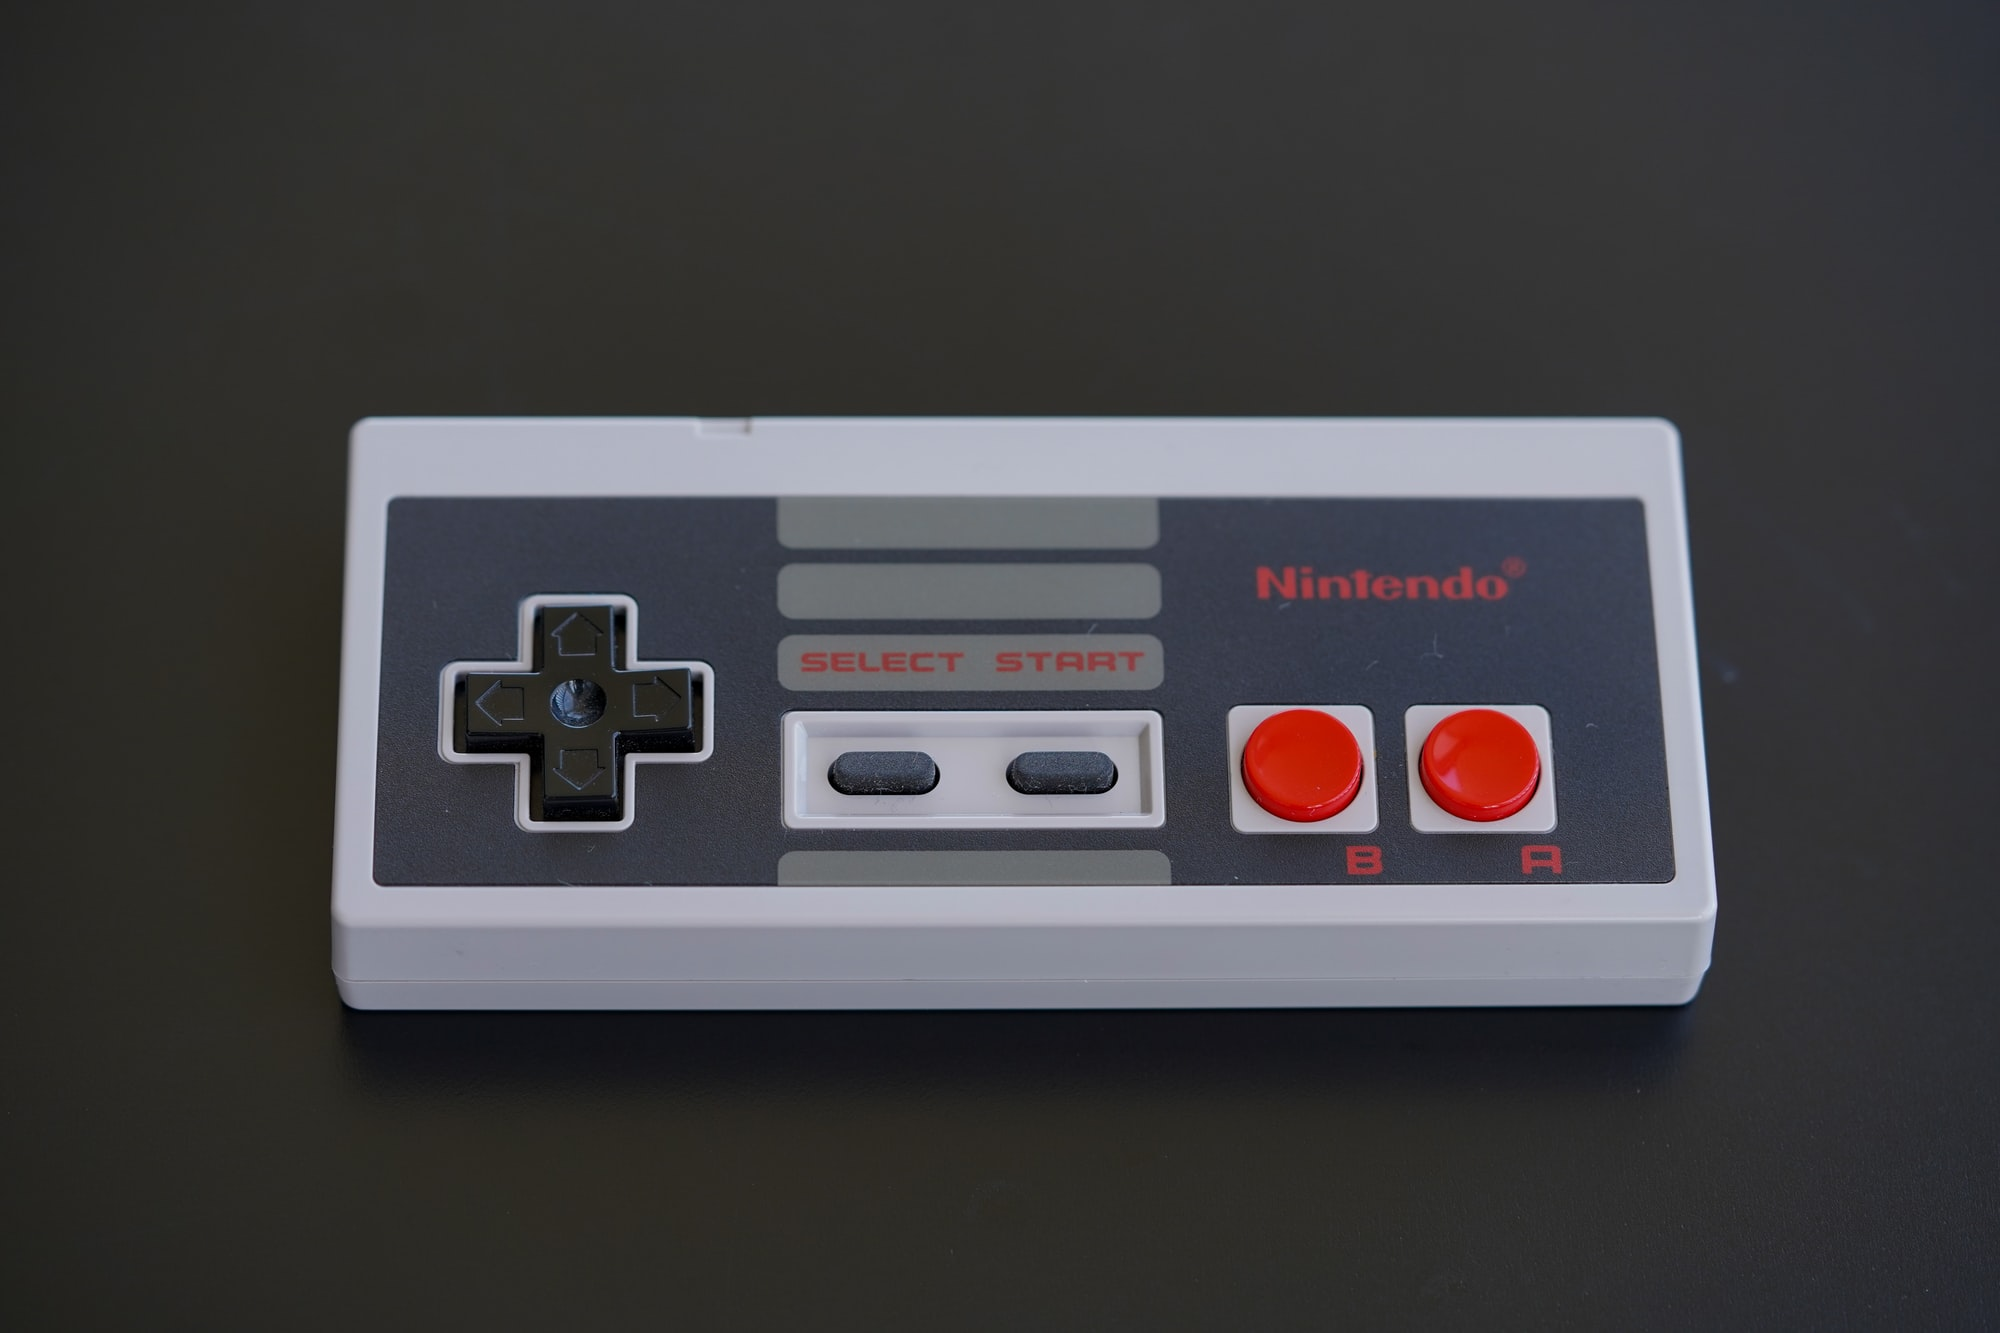 NES DIY controller for switch